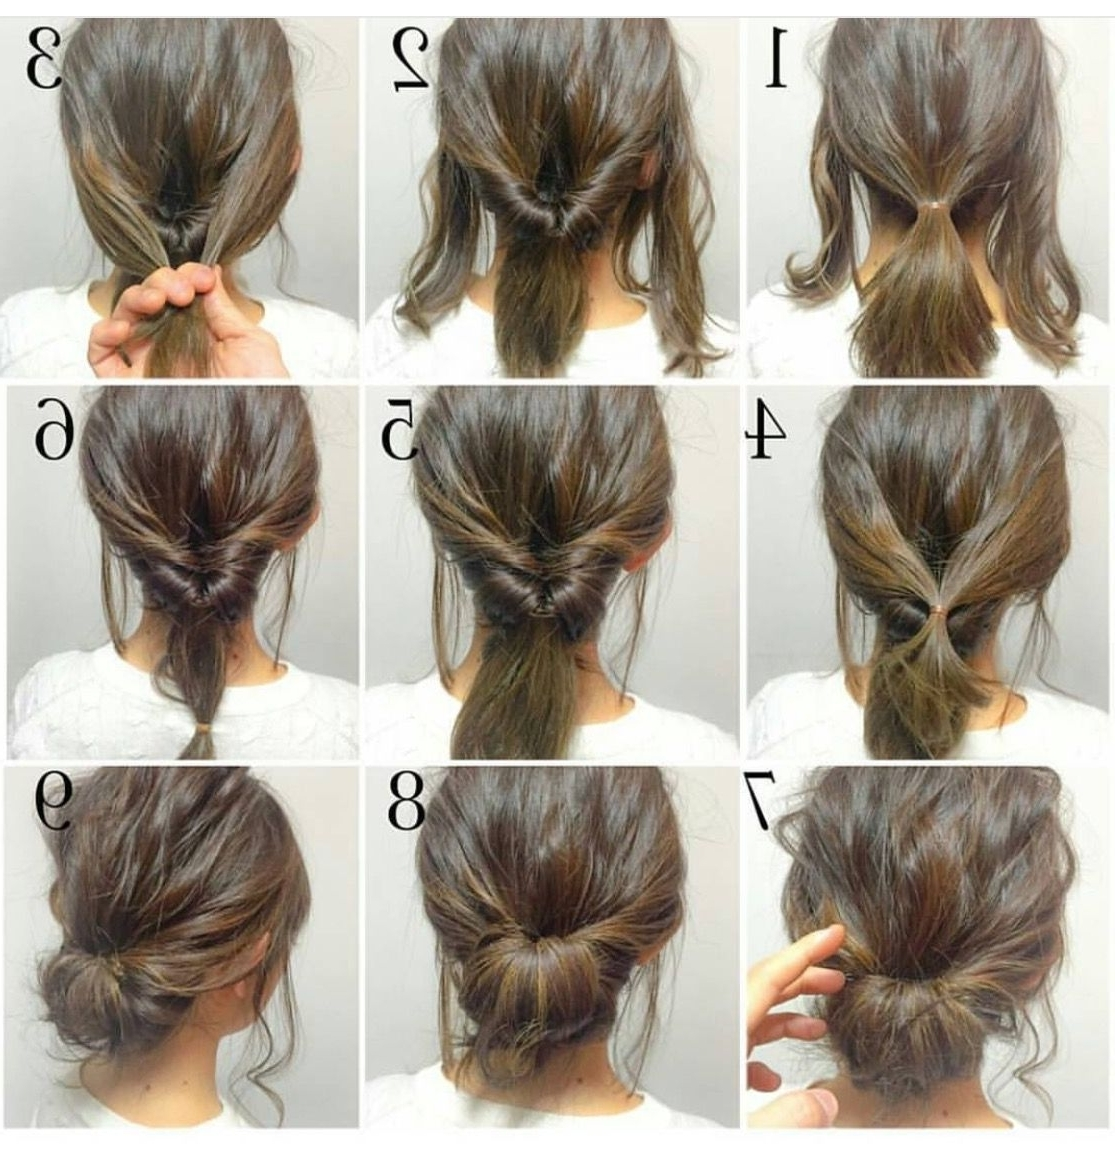 Easy, Hope This Works Out Quick Morning Hair! | • H A I R Within Fast Updo Hairstyles For Short Hair (View 10 of 15)